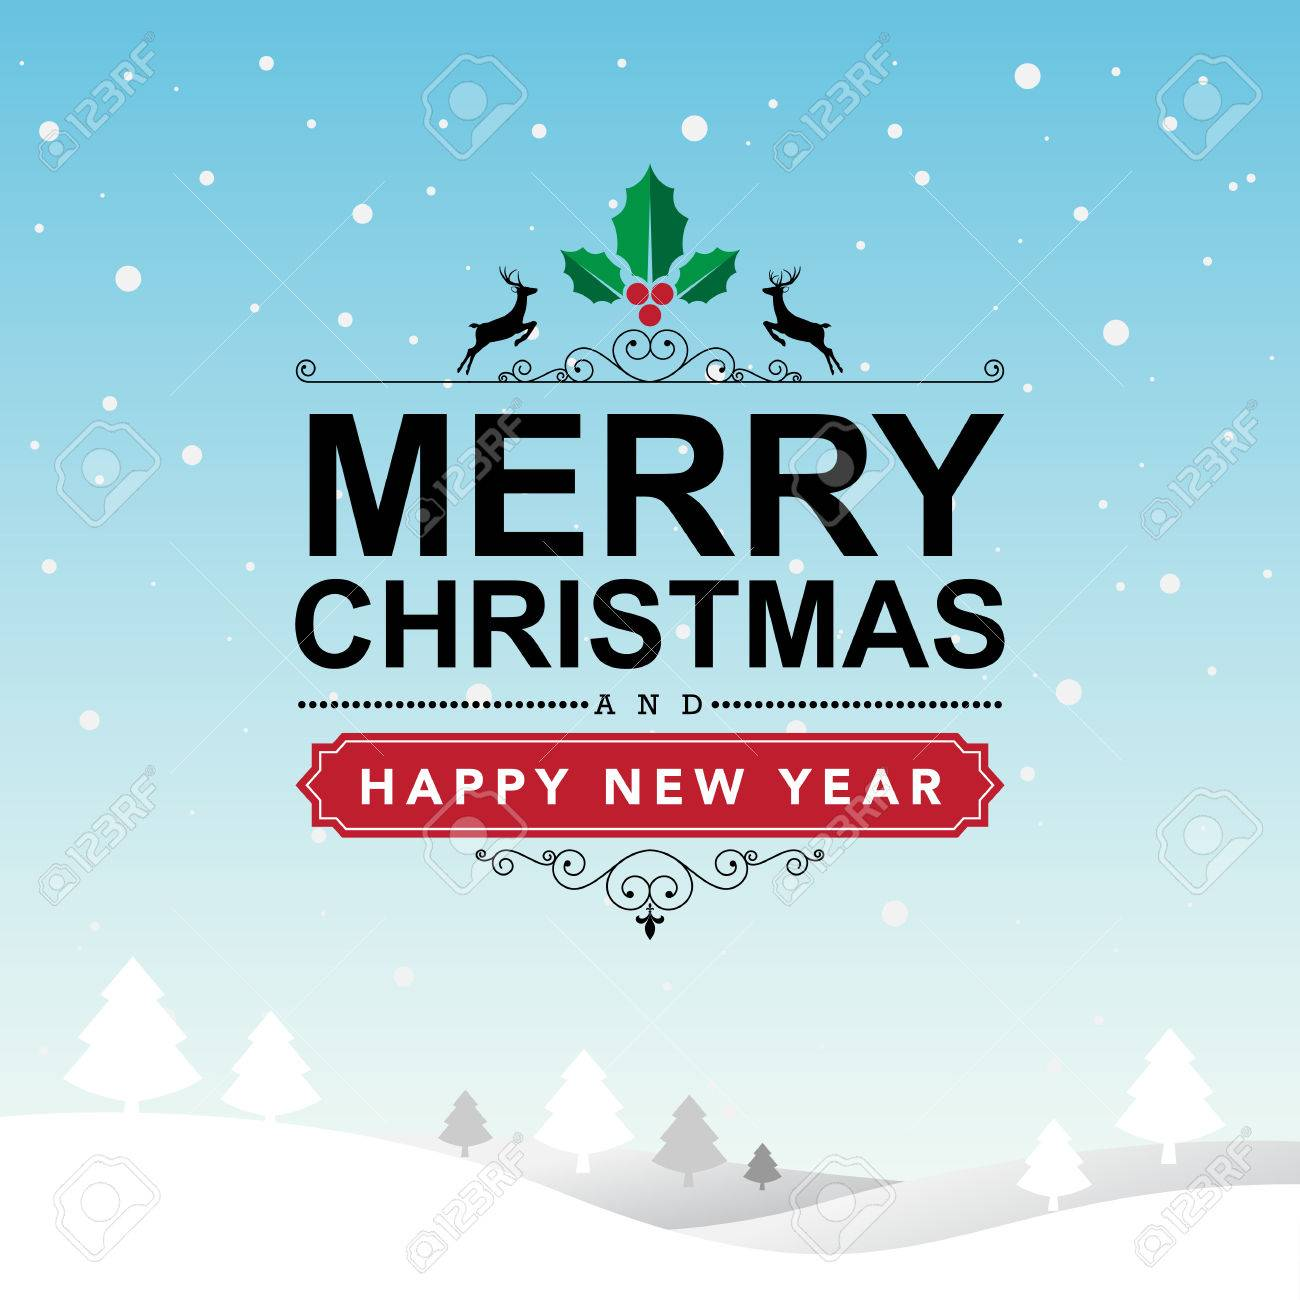 Merry Christmas and Happy New Year typographic background,Illustration - 46777882